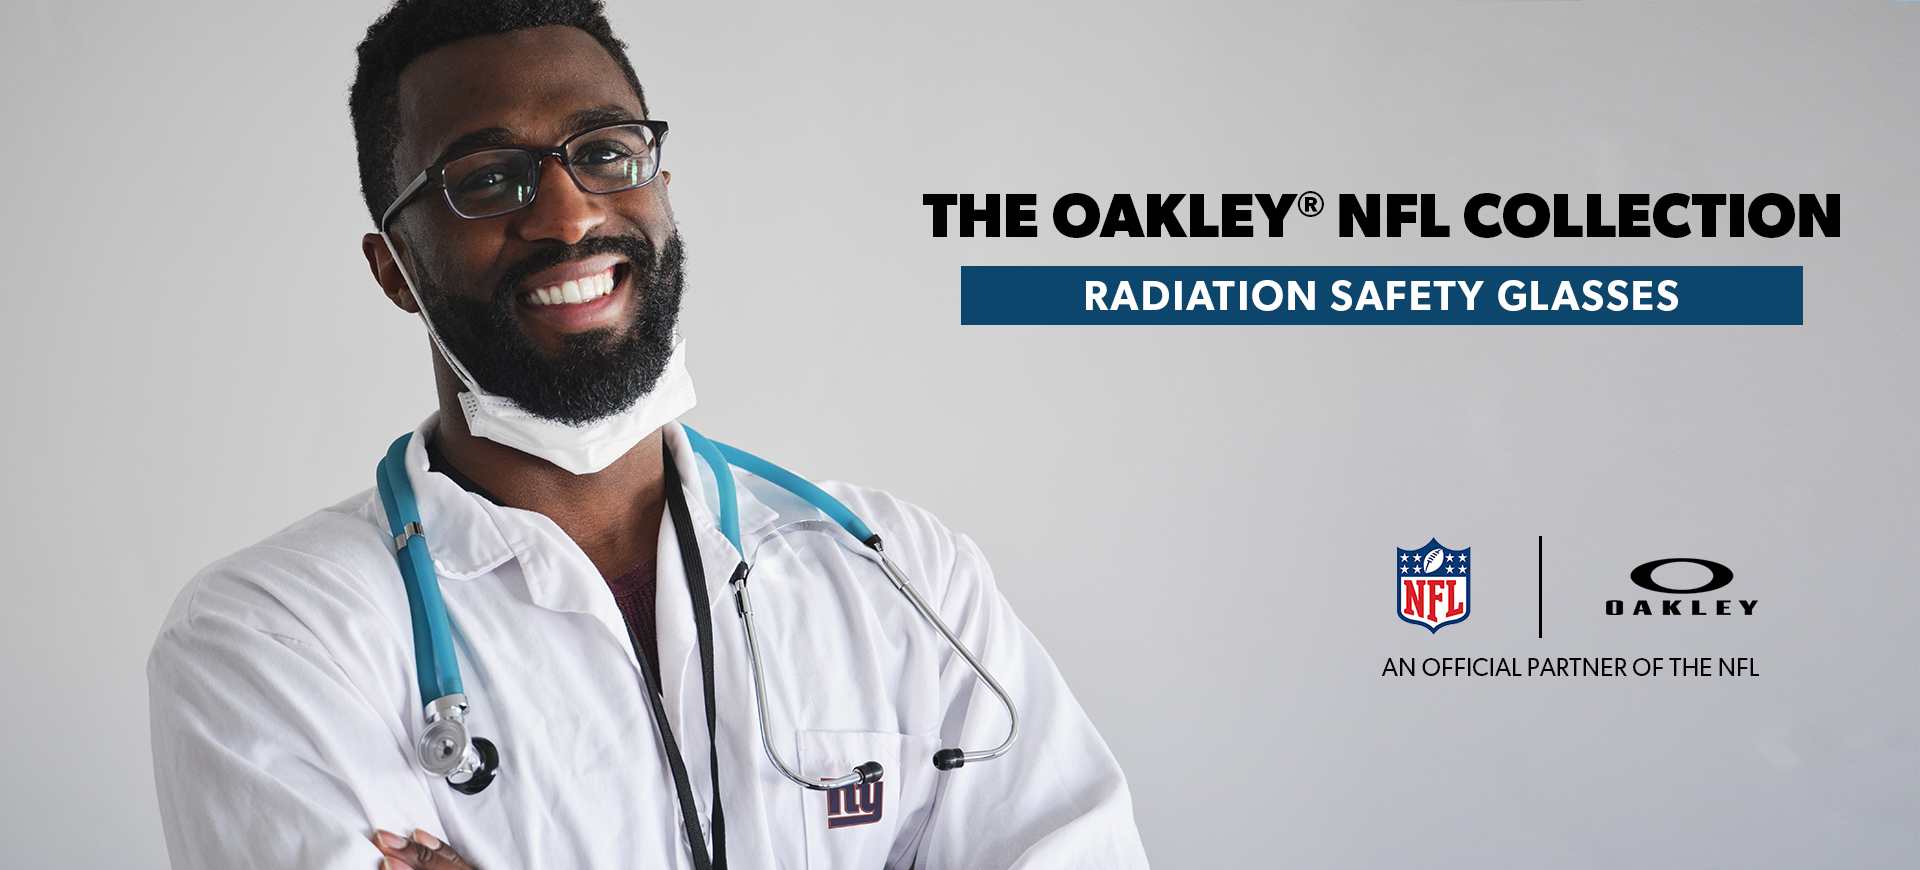 OAKLEY NFL COLLECTION